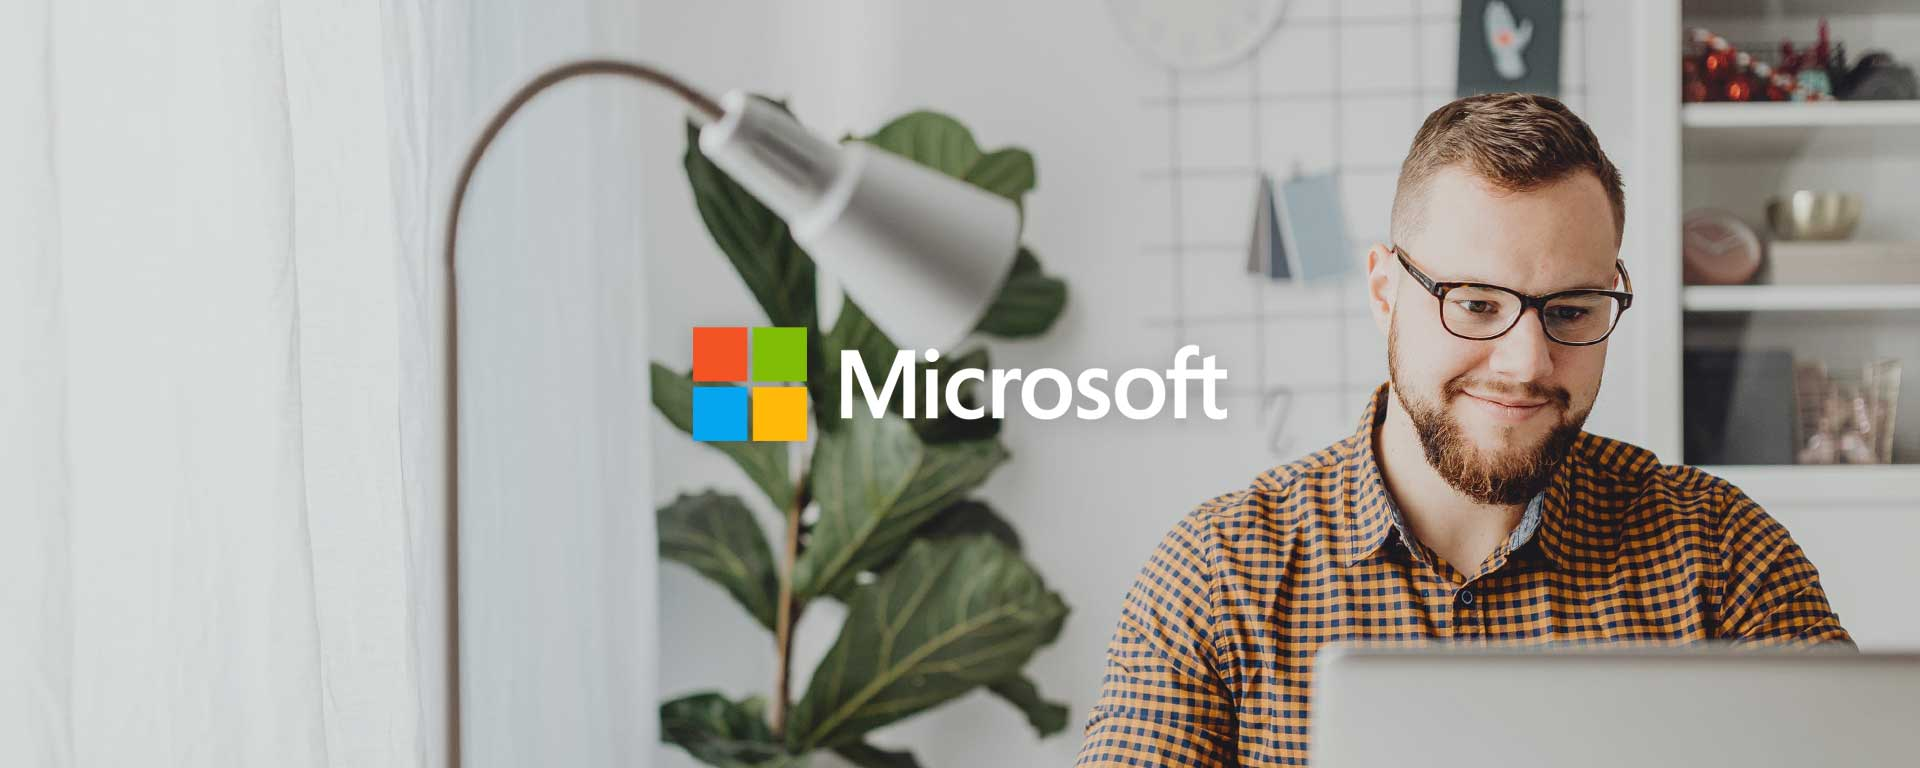 Microsoft Ads Optimization Score: How to Upgrade Your Search Ads